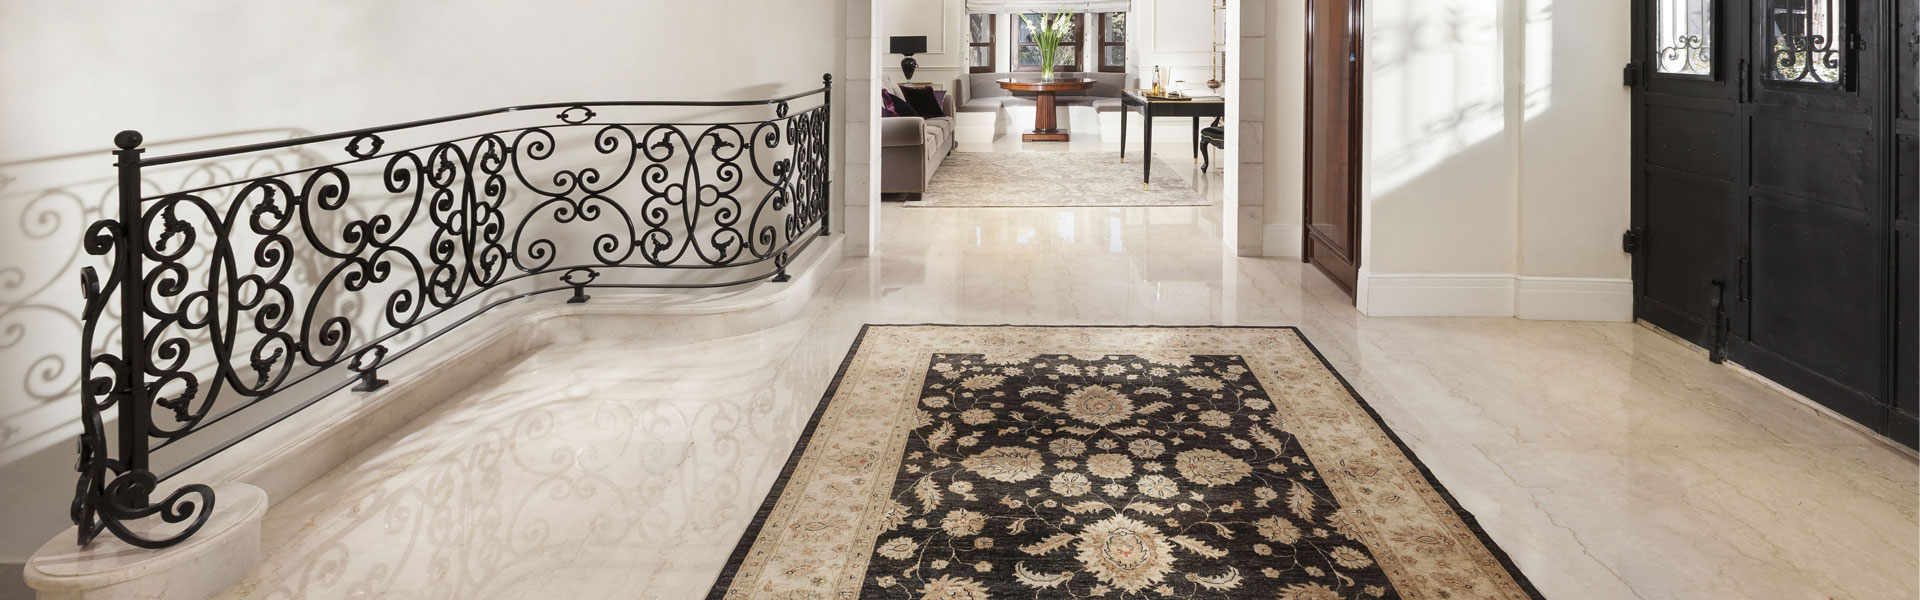 Professional carpet cleaning services at your doorstep!